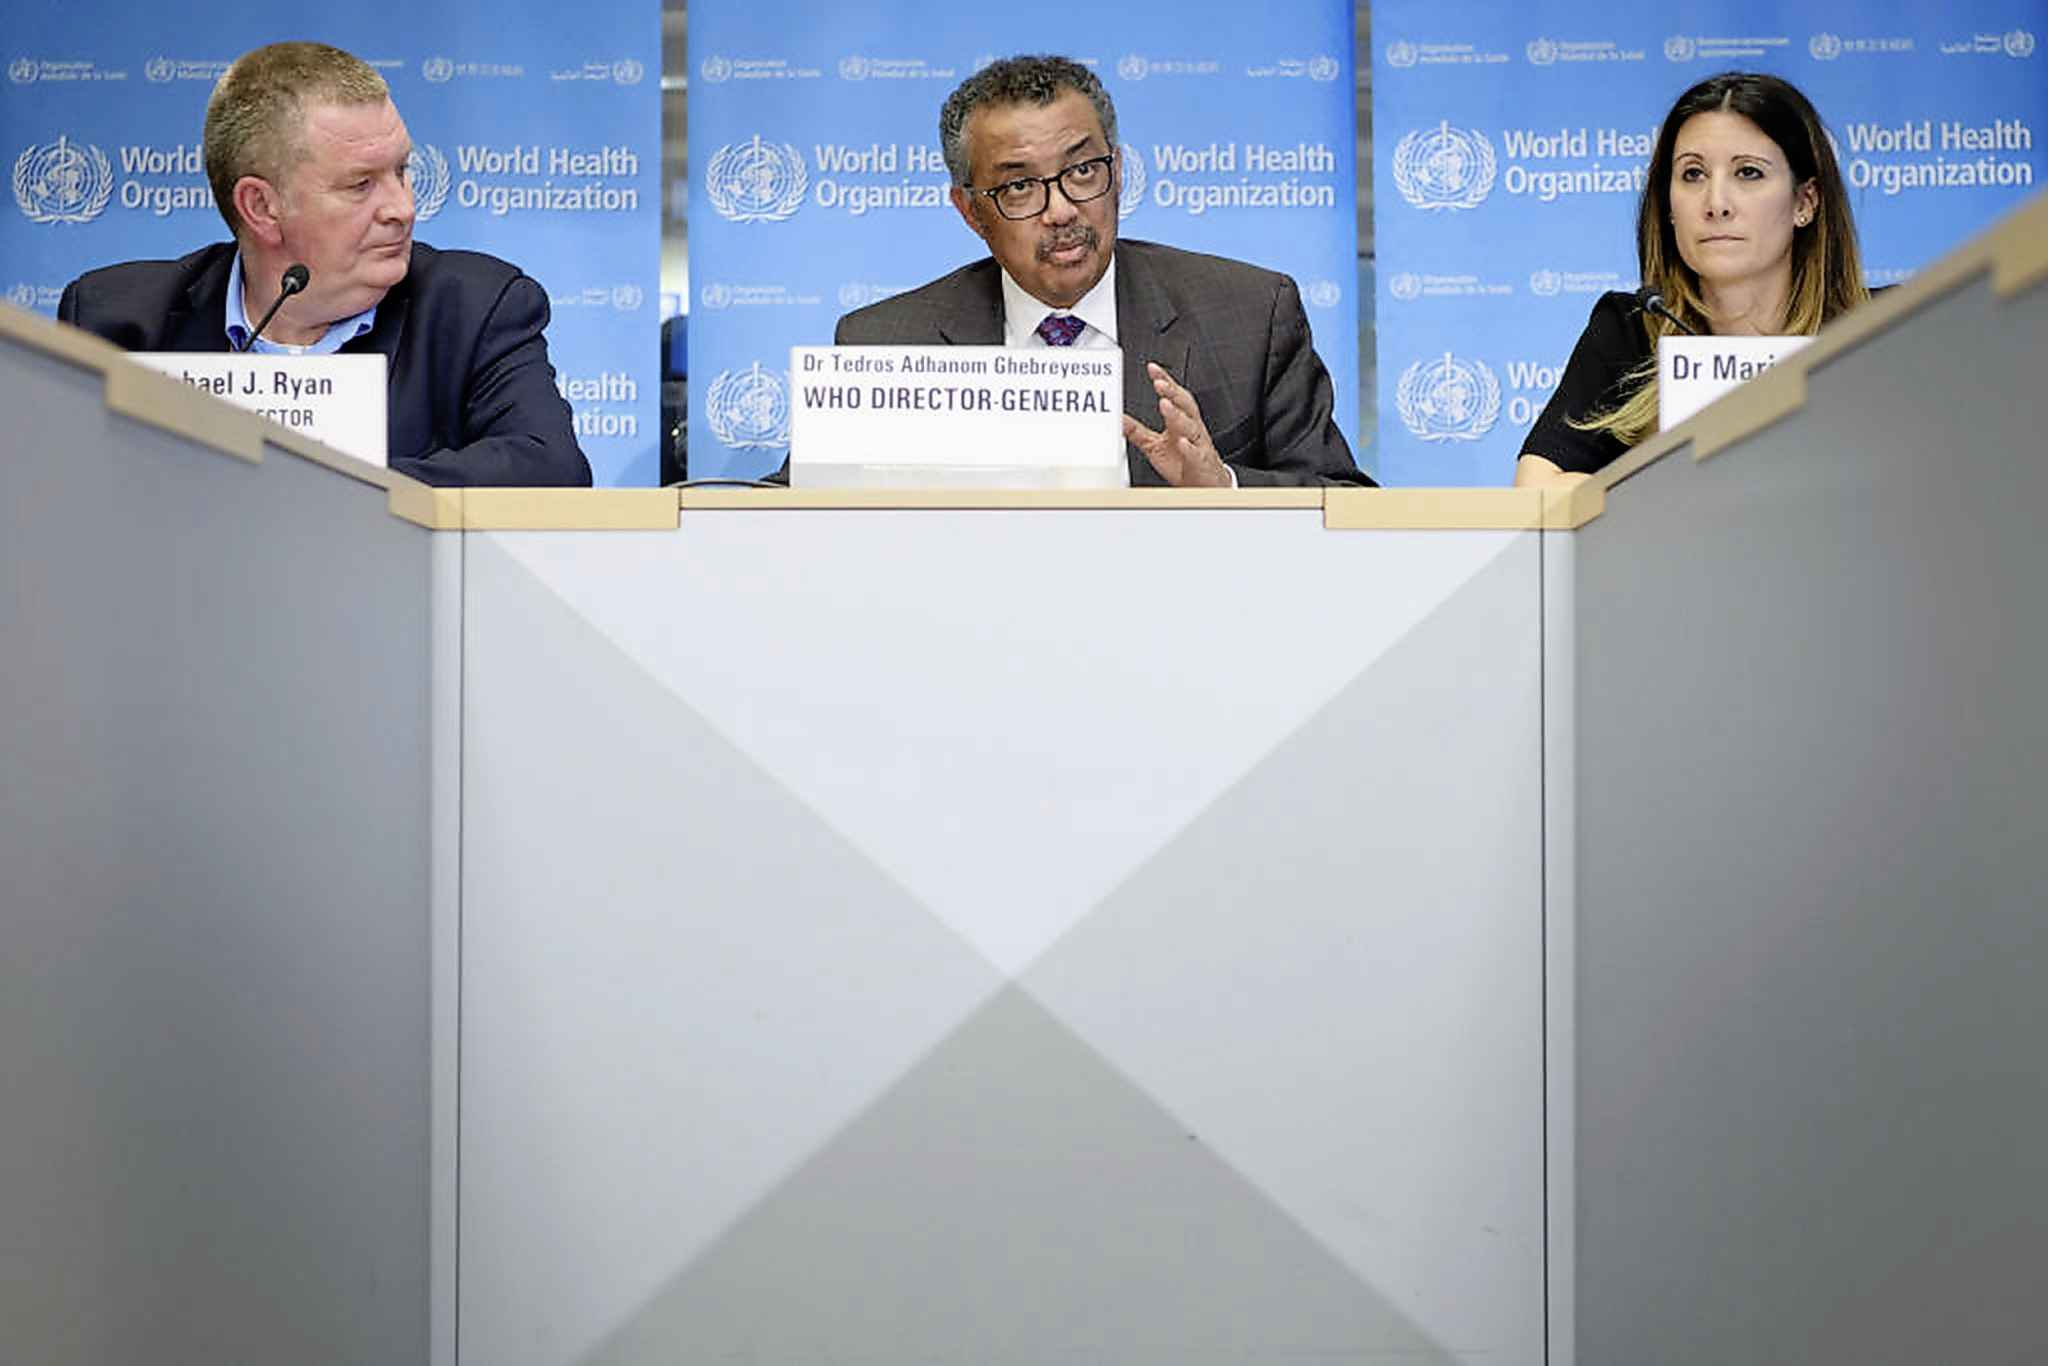 From left, World Health Organization (WHO) Health Emergencies Programme Director Dr. Michael J. Ryan, WHO Director-General Tedros Adhanom Ghebreyesus and WHO Technical Lead Maria Van Kerkhove attend a daily press briefing on COVID-19 at the WHO headquarters last week in Geneva. (Fabrice Coffrini / Tribune Media Services)